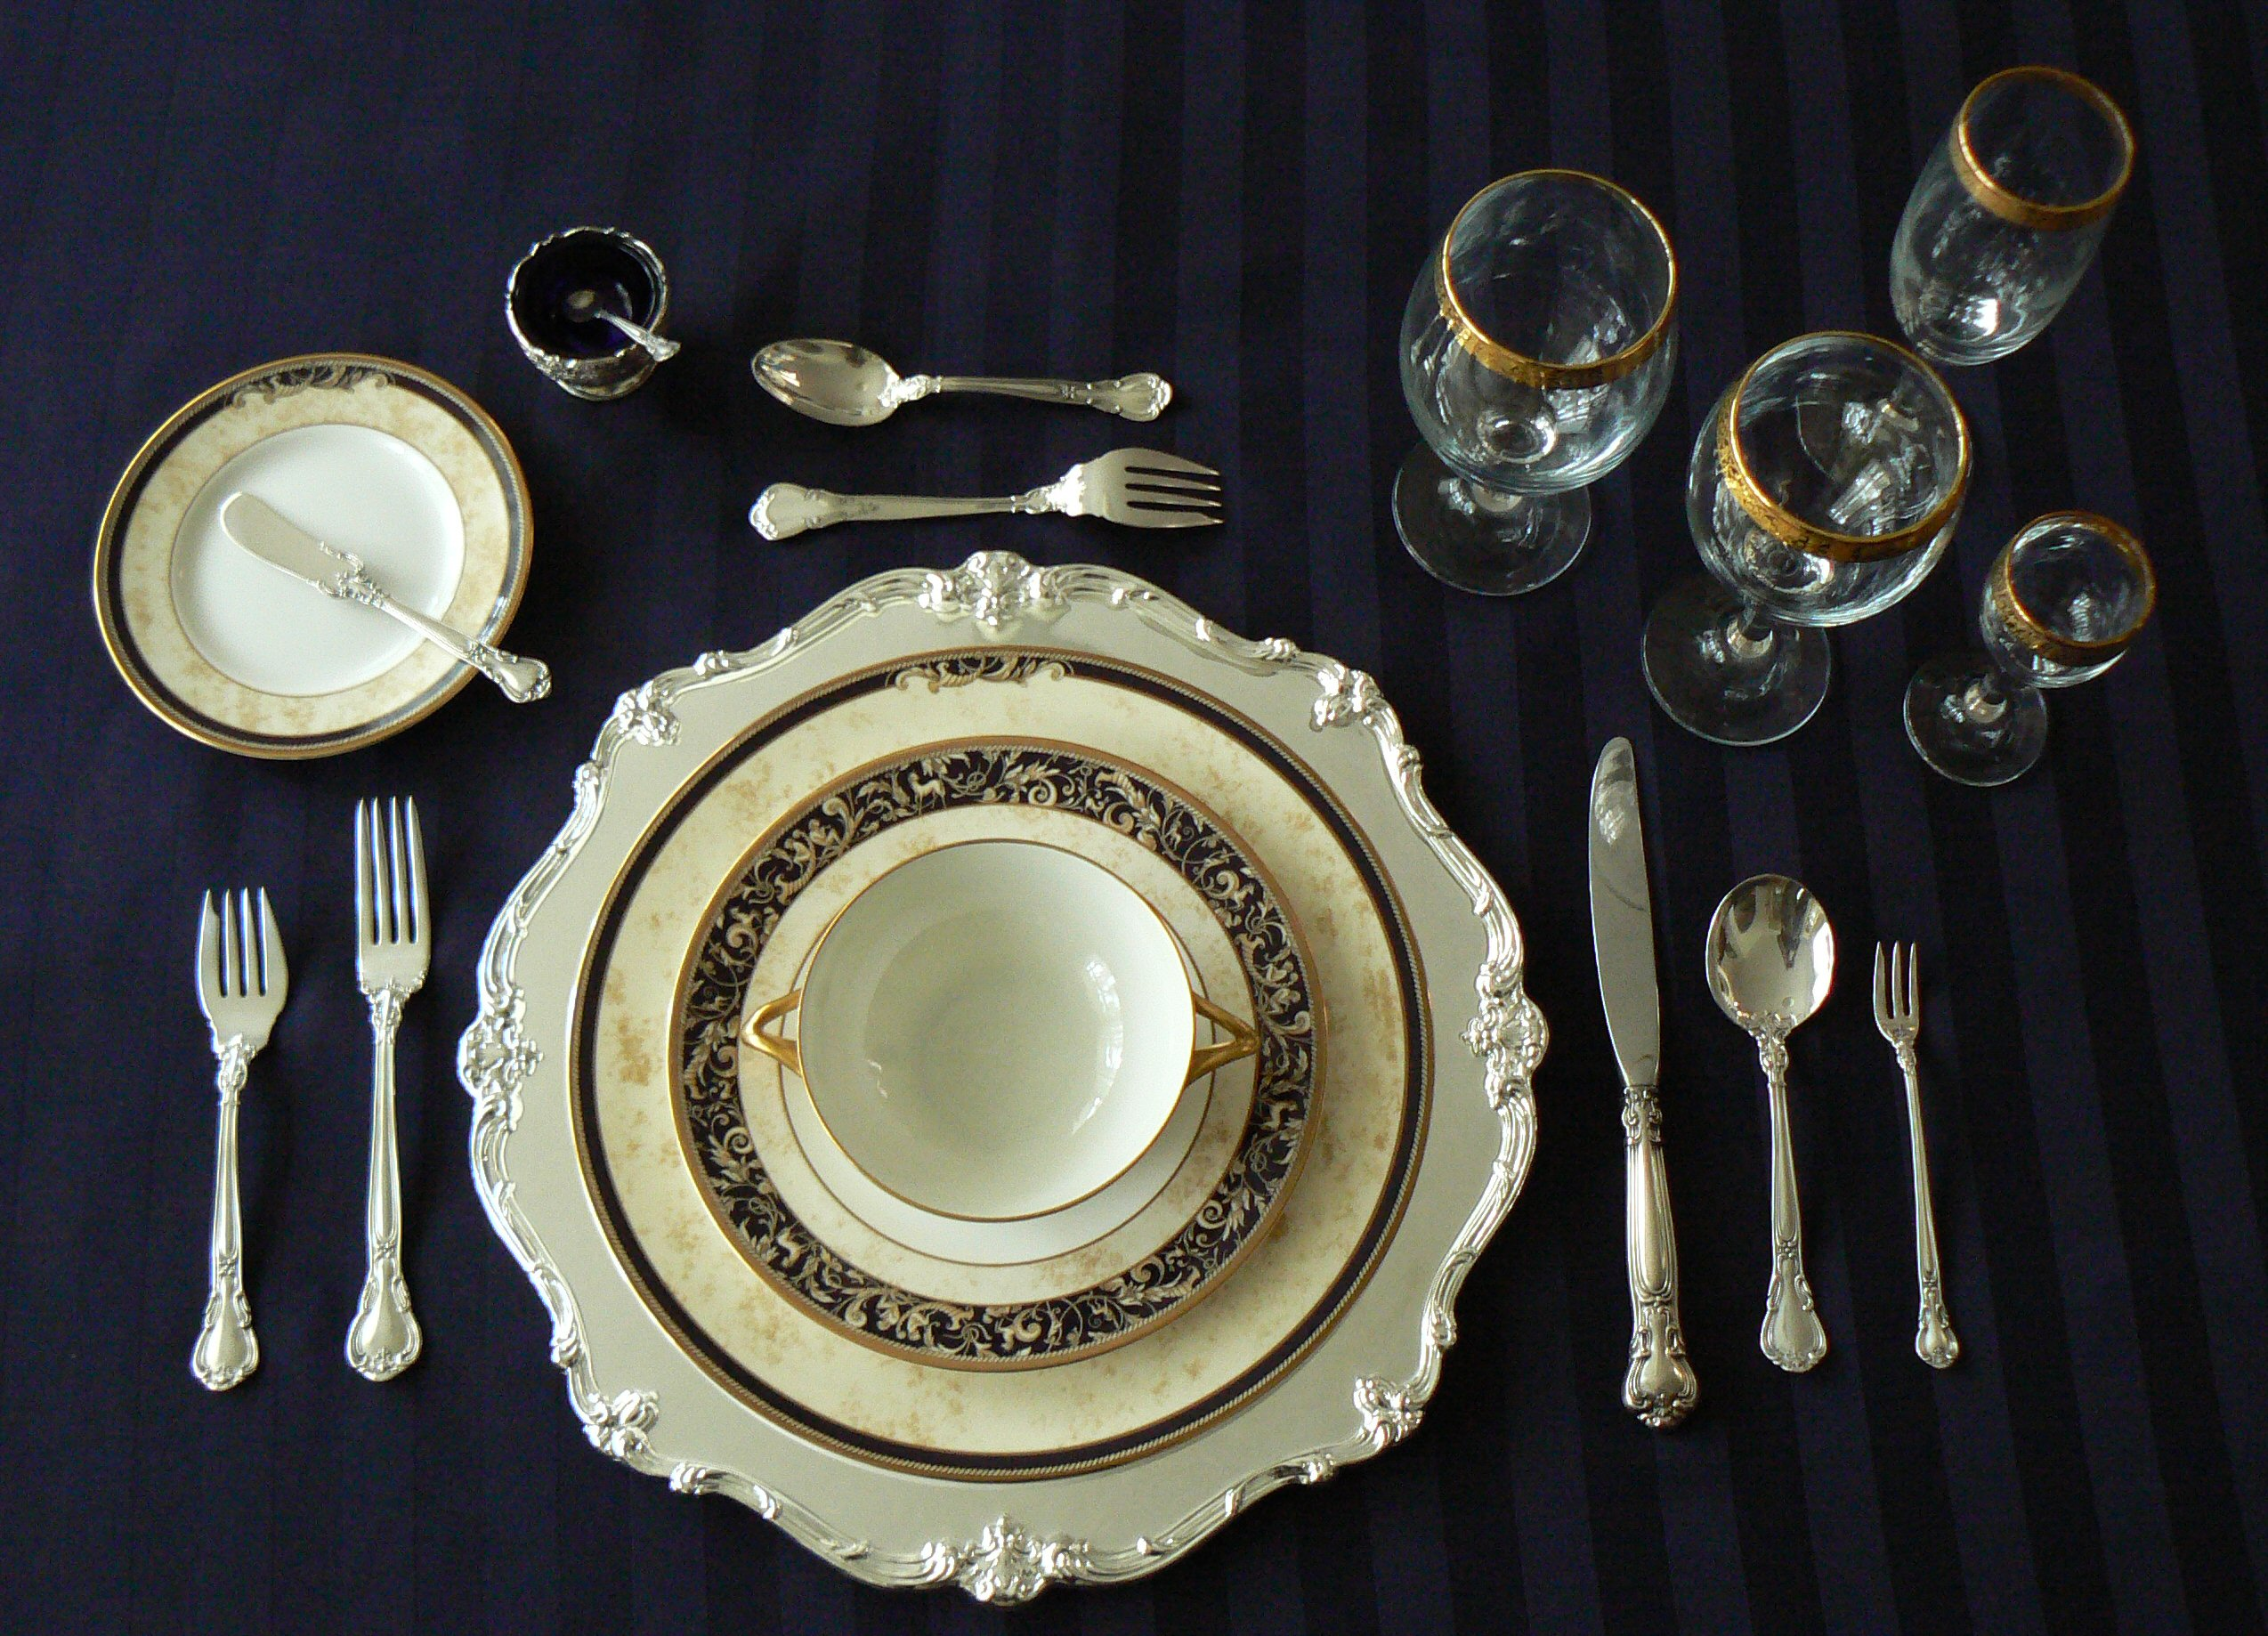 Cutlery Placement For The Table Setting How To Serve Cutlery To - Proper table setting placement